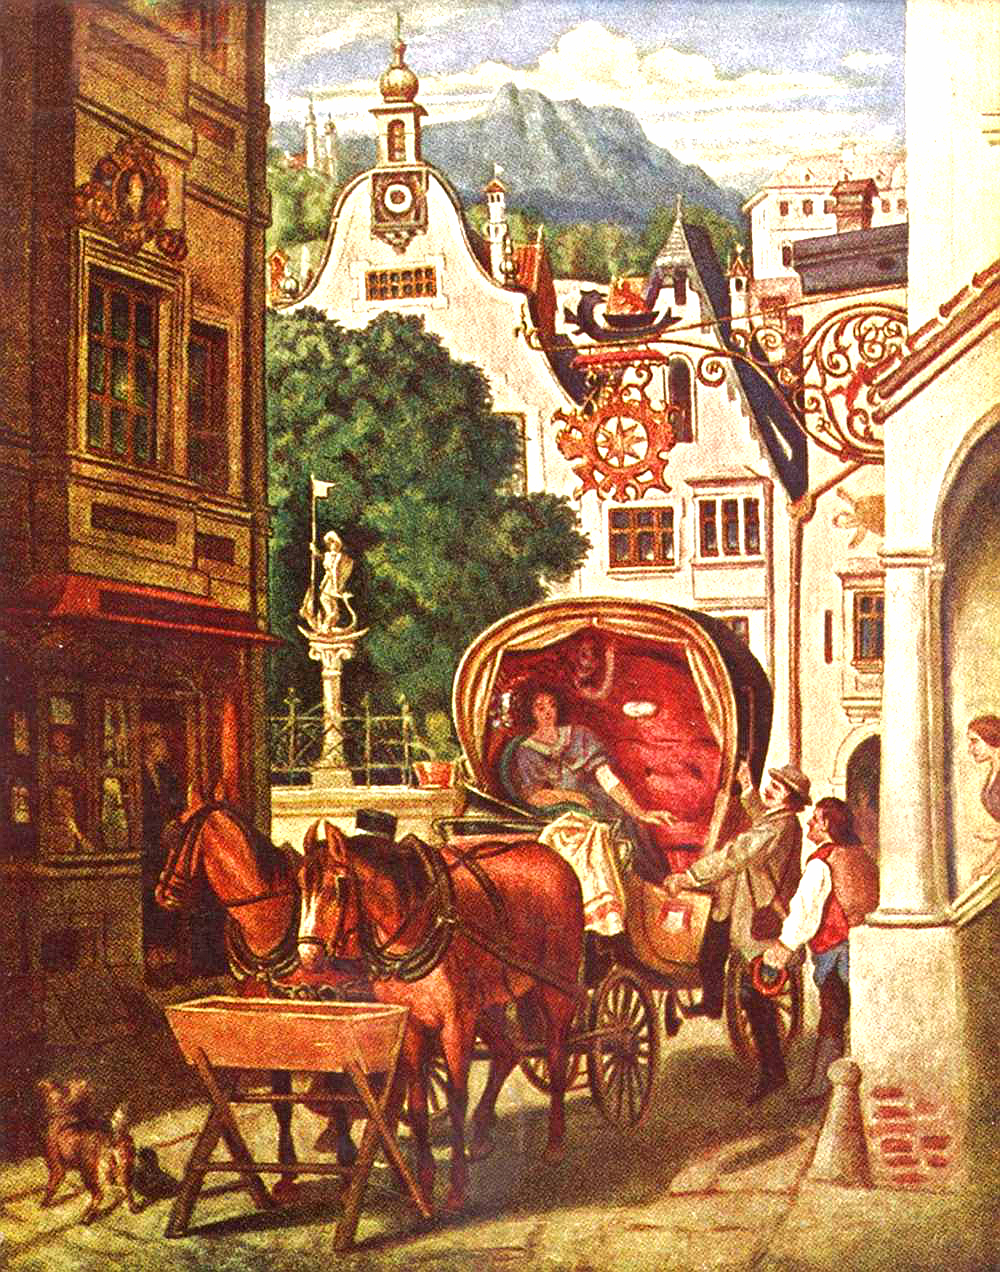 http://upload.wikimedia.org/wikipedia/commons/0/08/Moritz_von_Schwind_002.jpg